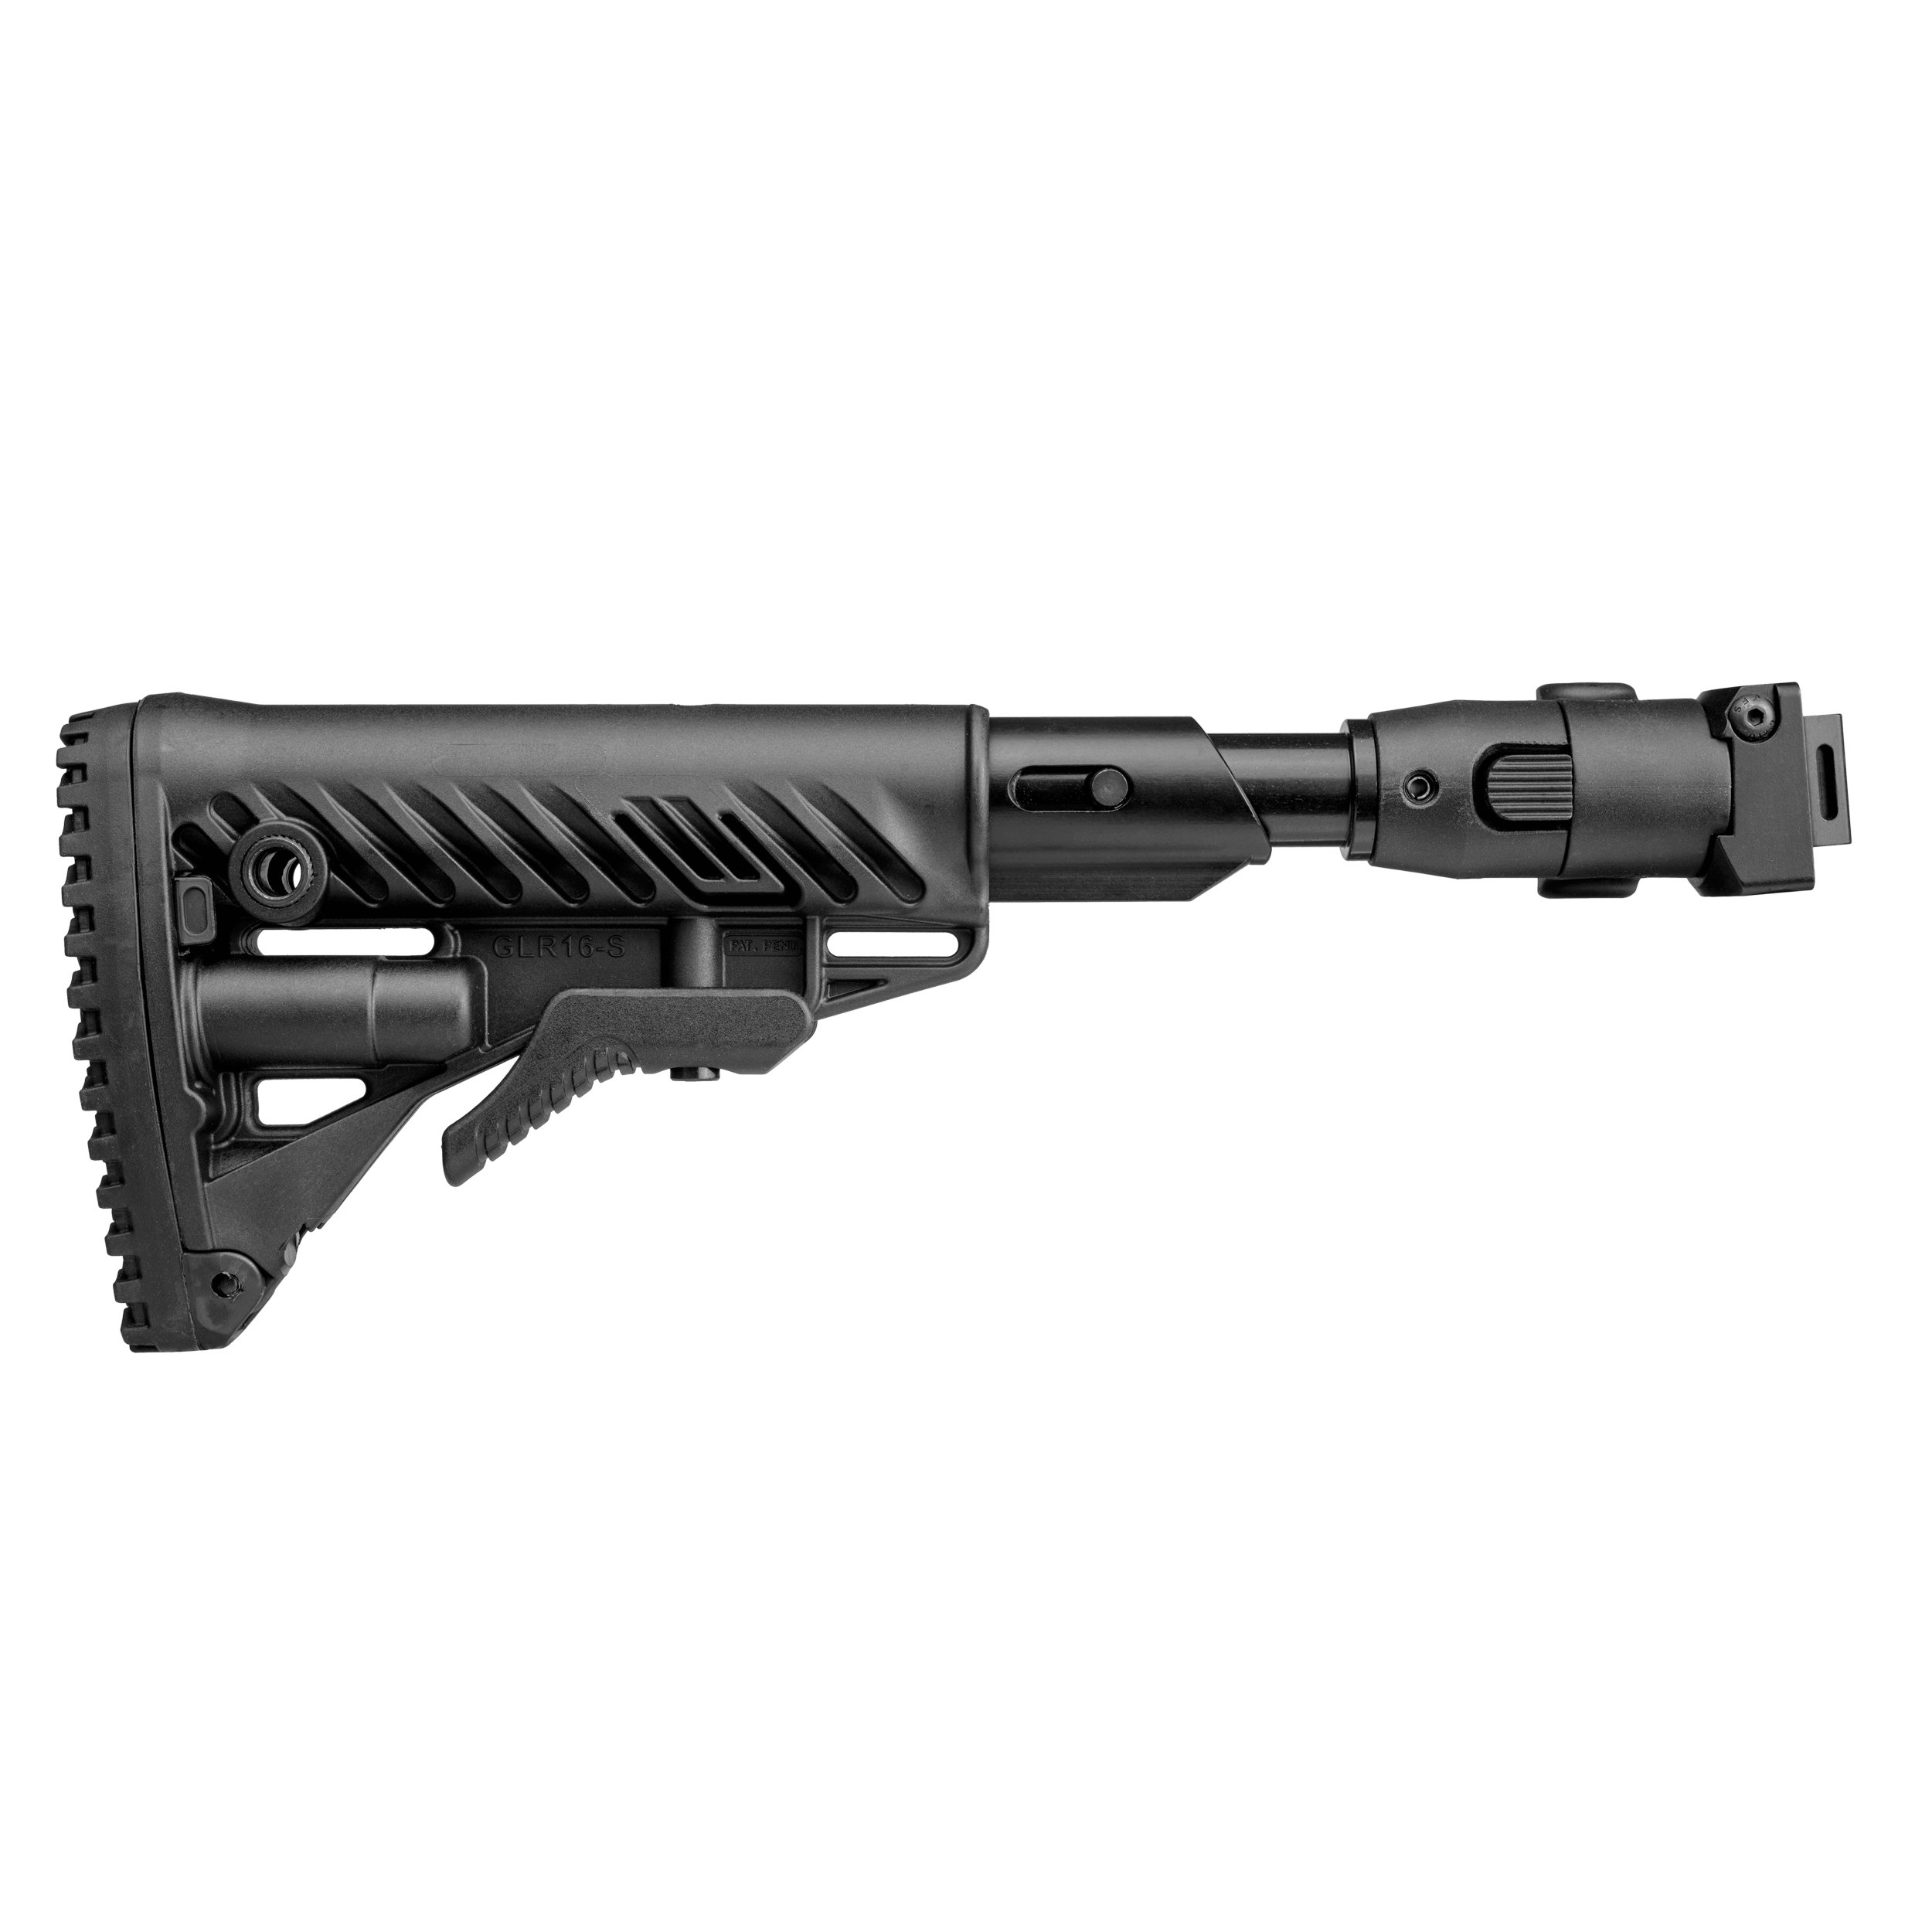 AKS-74U Folding Buttstock  / Shock Absorbing